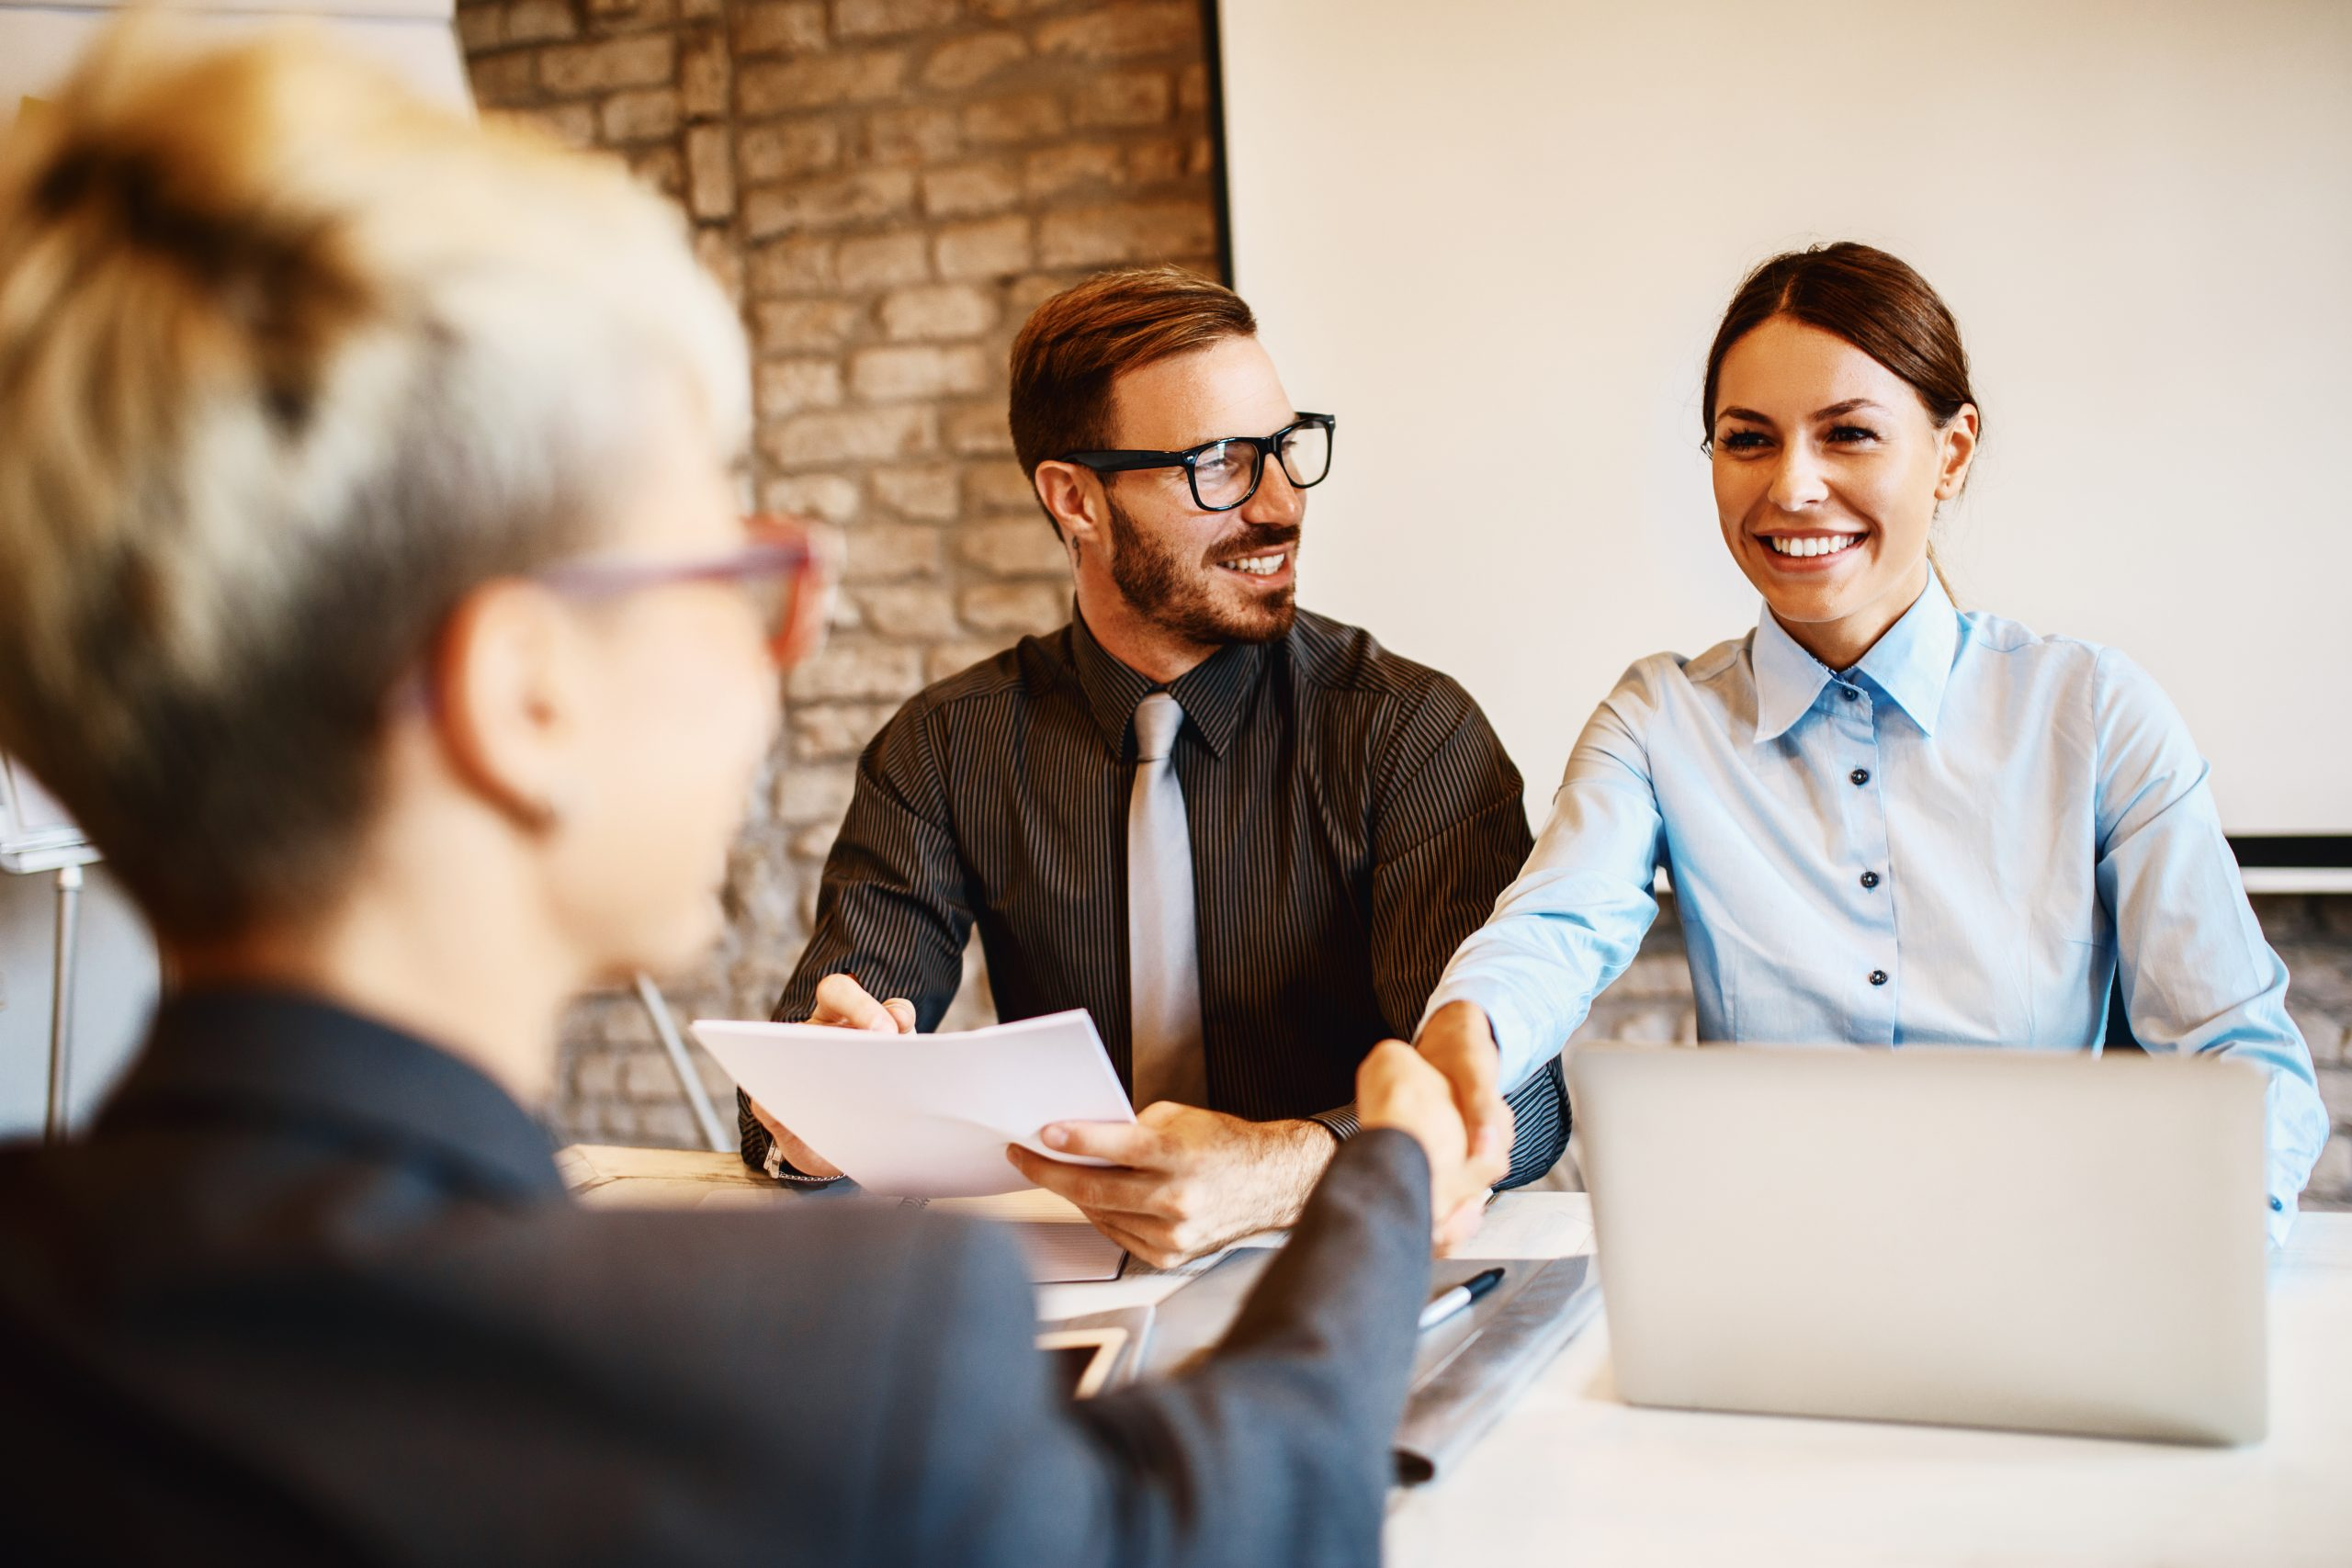 Job Interview Tip 2: How to Make a Great Impression